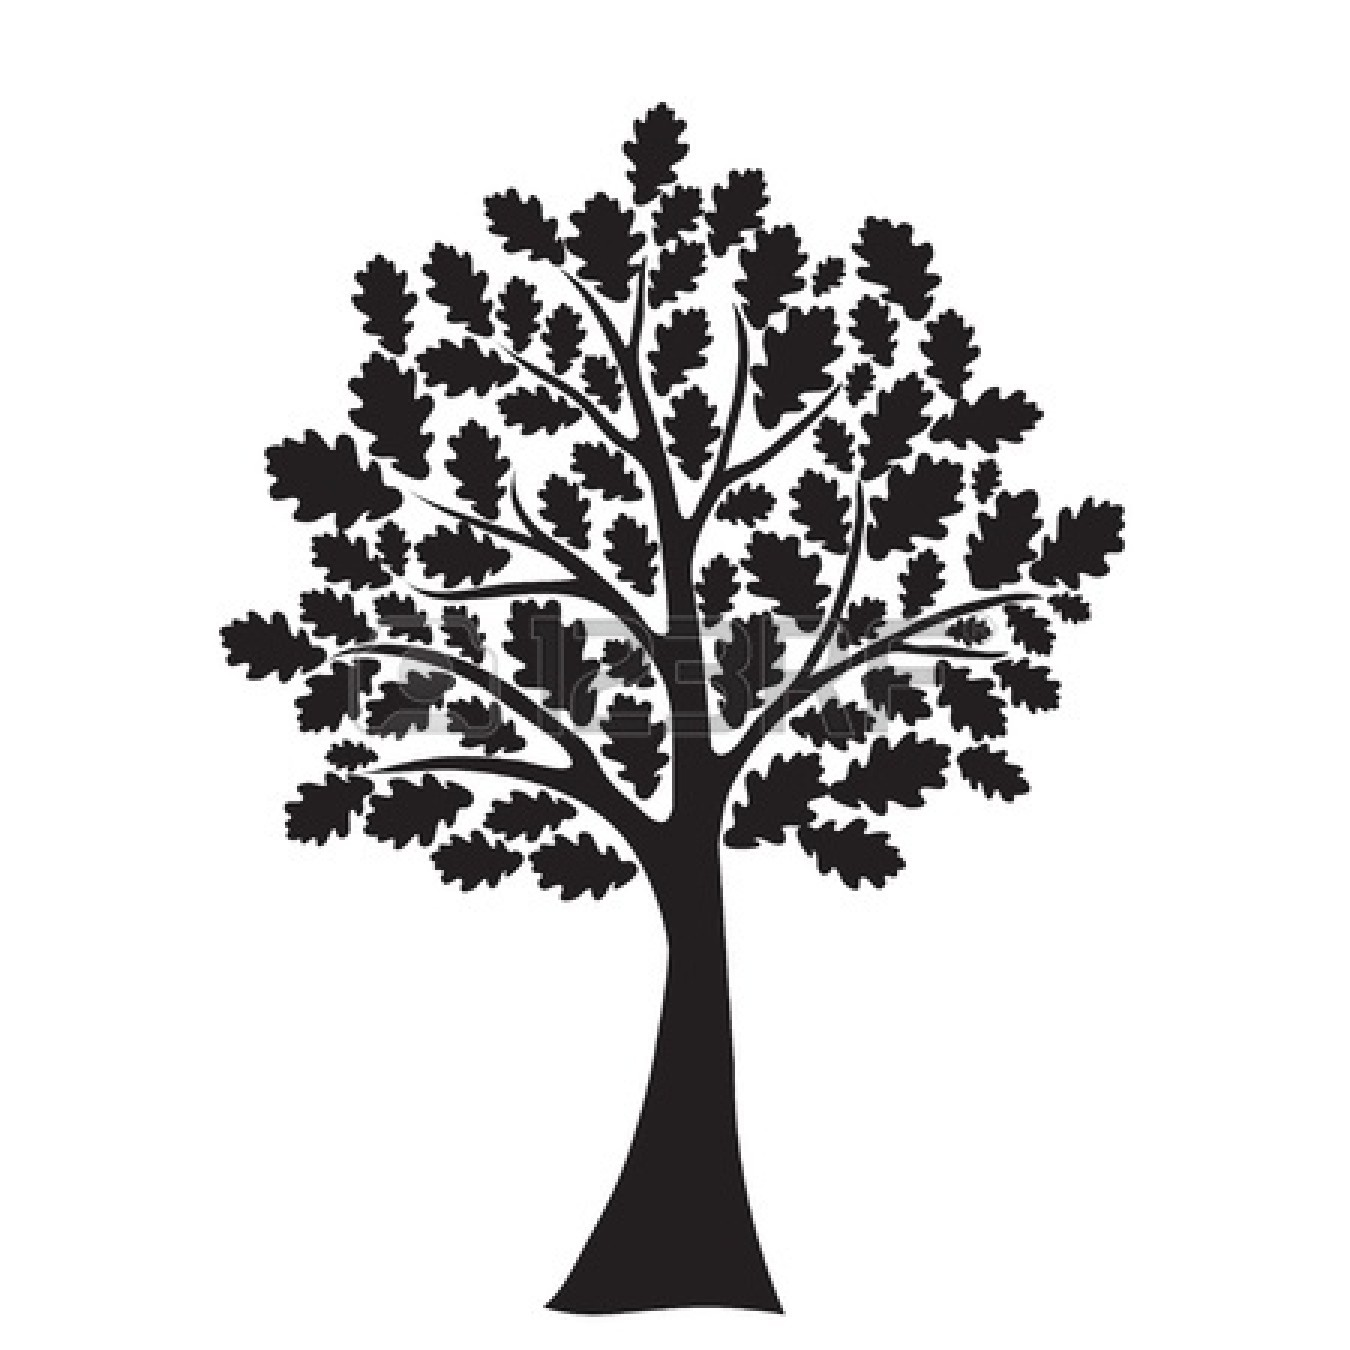 Free clipart images black and white tree graphic black and white library Best Tree Clipart Black And White #18966 - Clipartion.com graphic black and white library